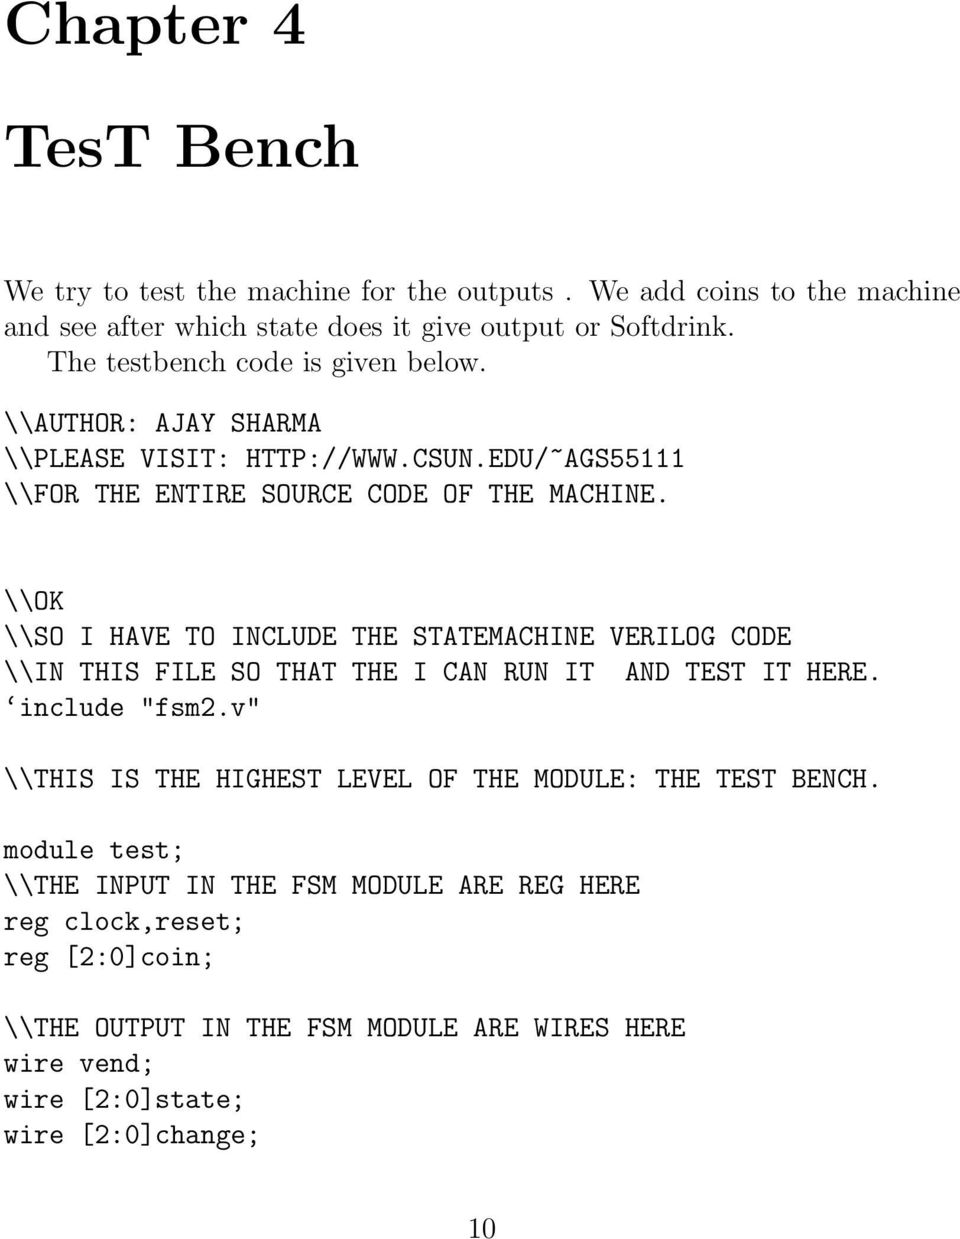 Vending Machine using Verilog - PDF